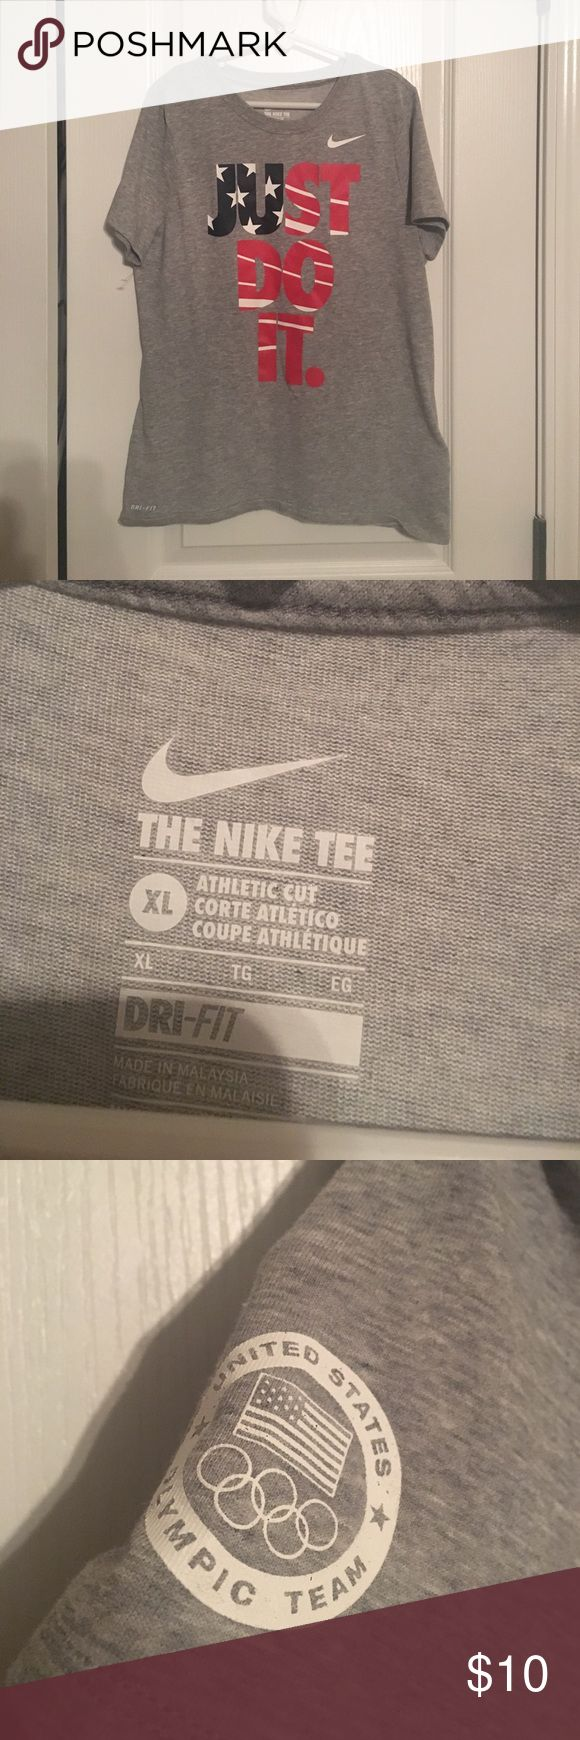 Nike USA soccer shirt Never worn but no tags. Perfect conditions Nike Shirts & Tops Tees - Short Sleeve